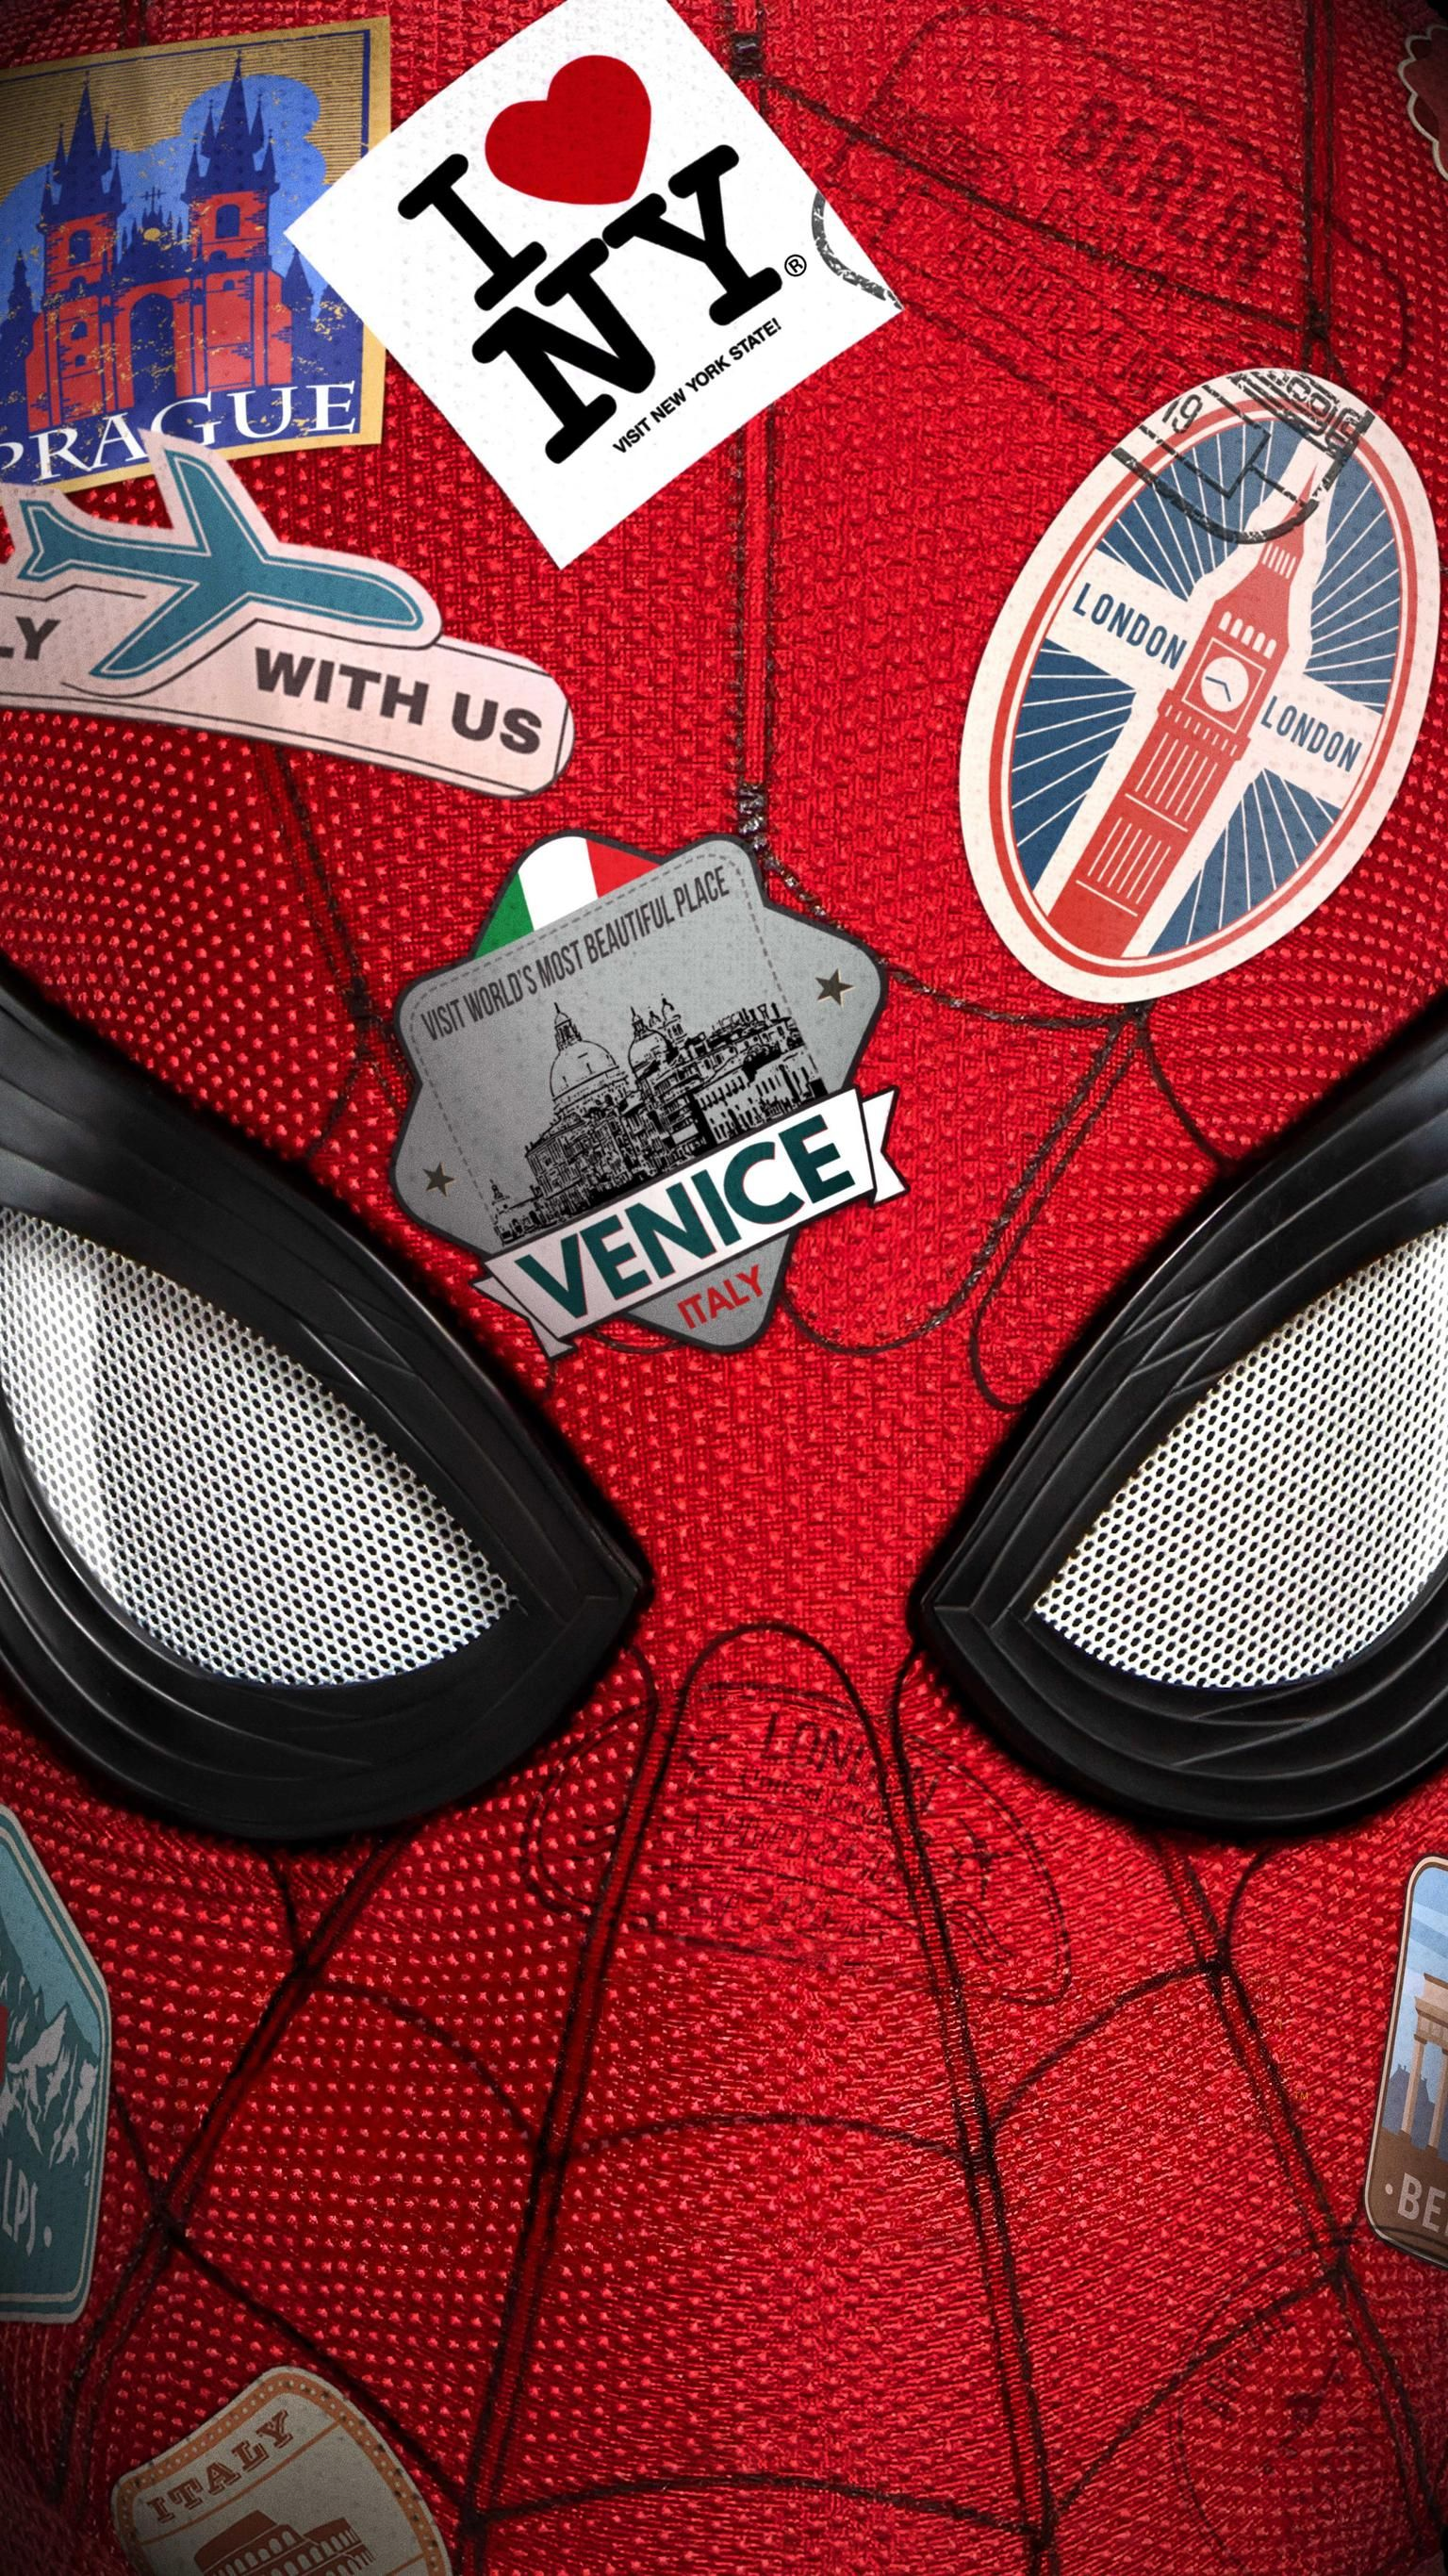 Spider Man Far From Home 19 Phone Wallpaper Moviemania Marvel Iphone Wallpaper Superhero Wallpaper Spiderman